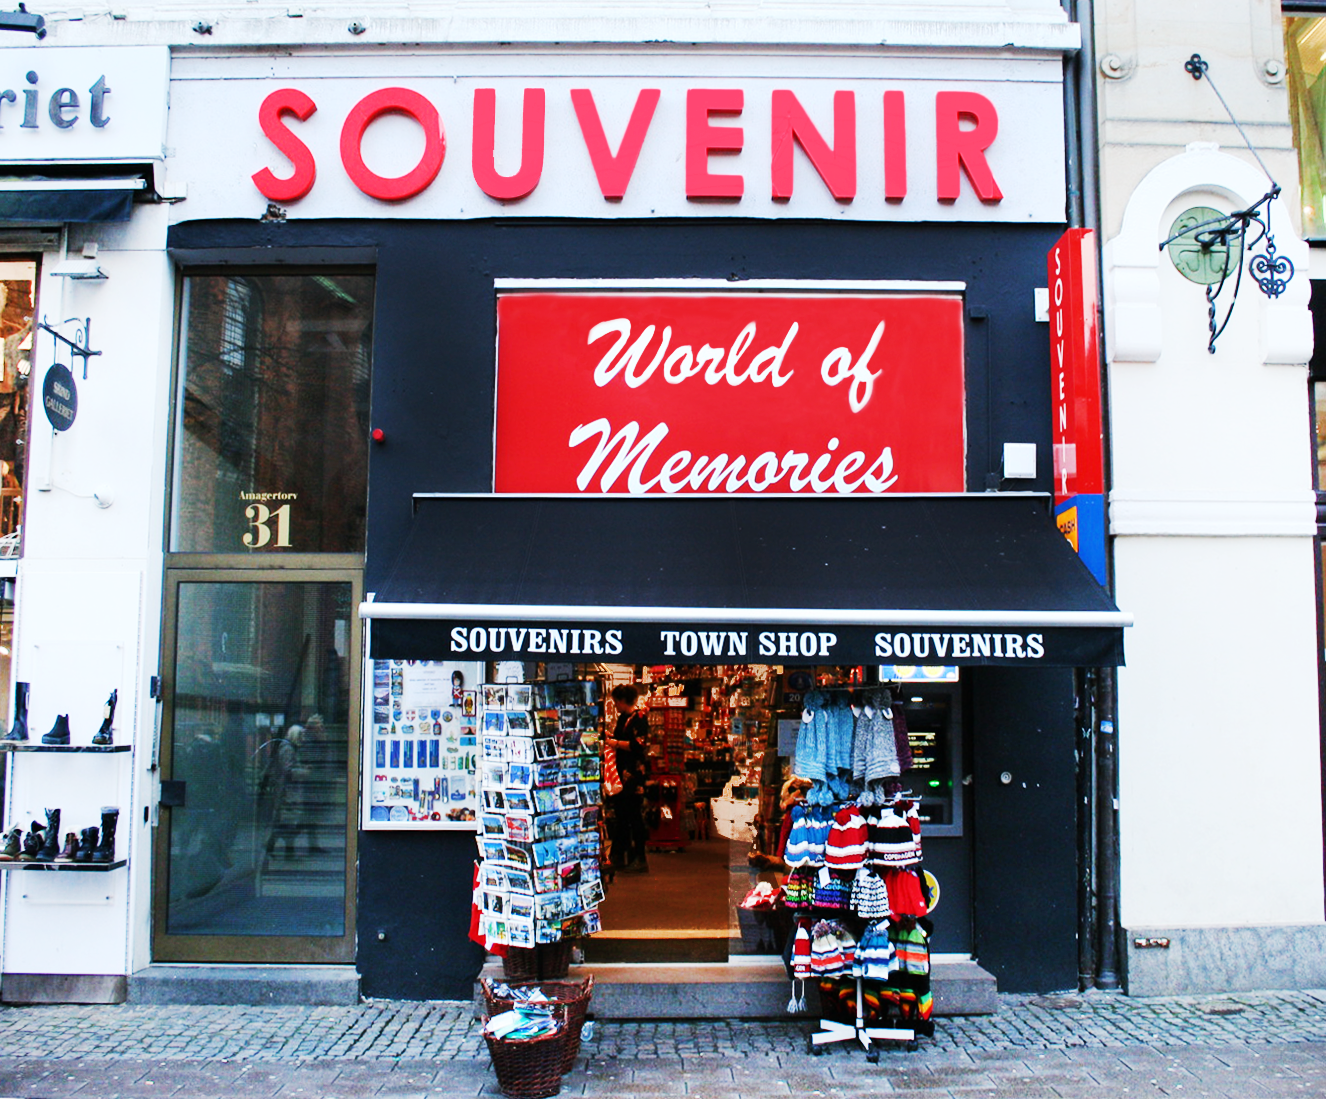 Souvenir - World of Memories, Amagertorv 31, Stroeget